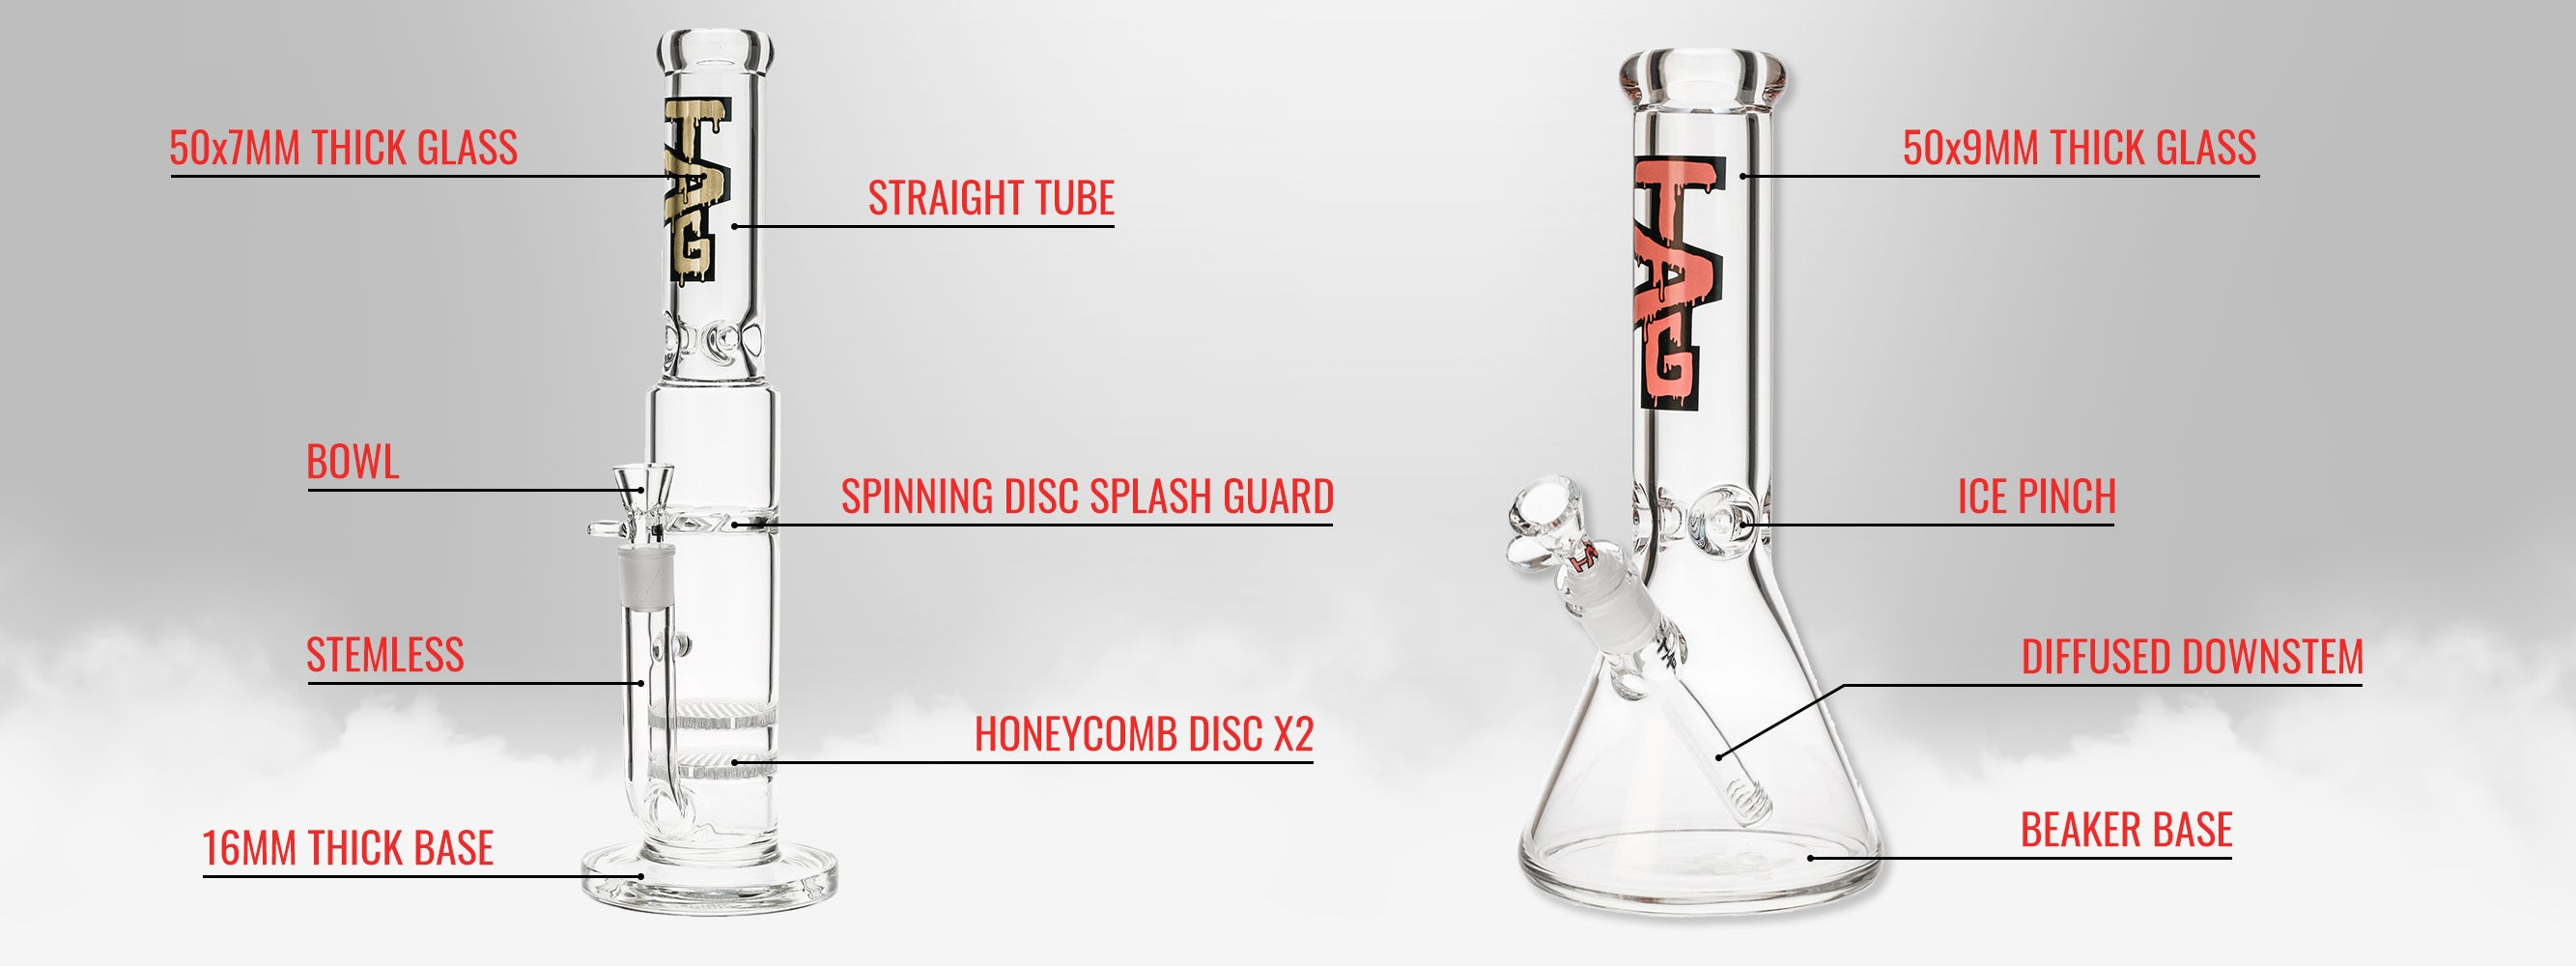 How To Use A Water Pipe - Knowing The Parts  sc 1 st  Thick Ass Glass & How To Use Water Pipes - Best Water Pipe Information | Thick Ass Glass